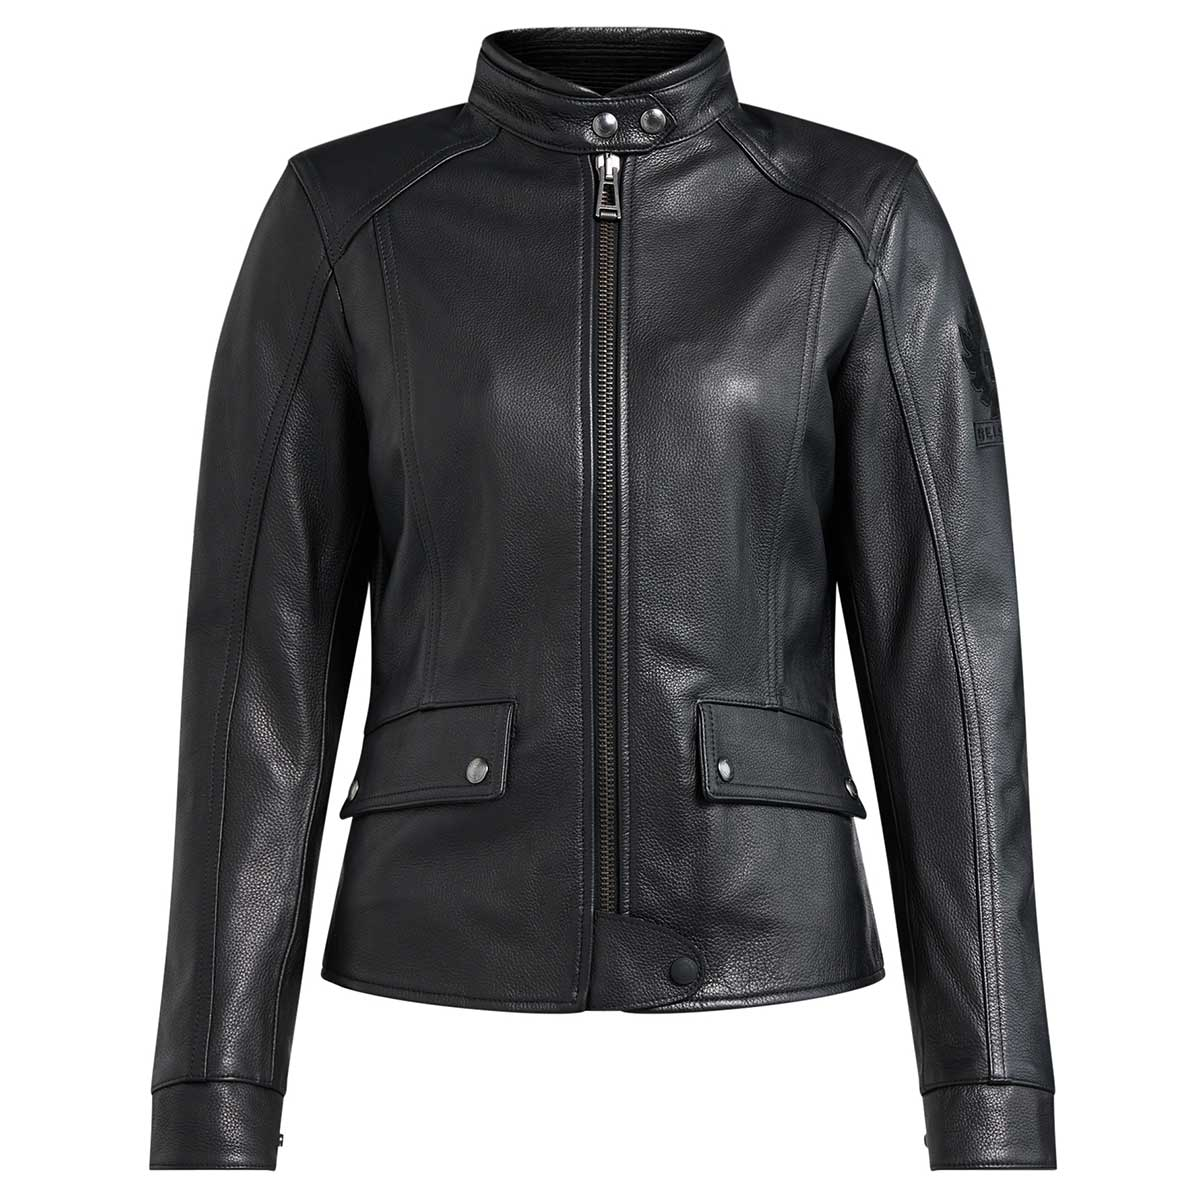 Belstaff Fairing Leather Ladies Jacket - Black